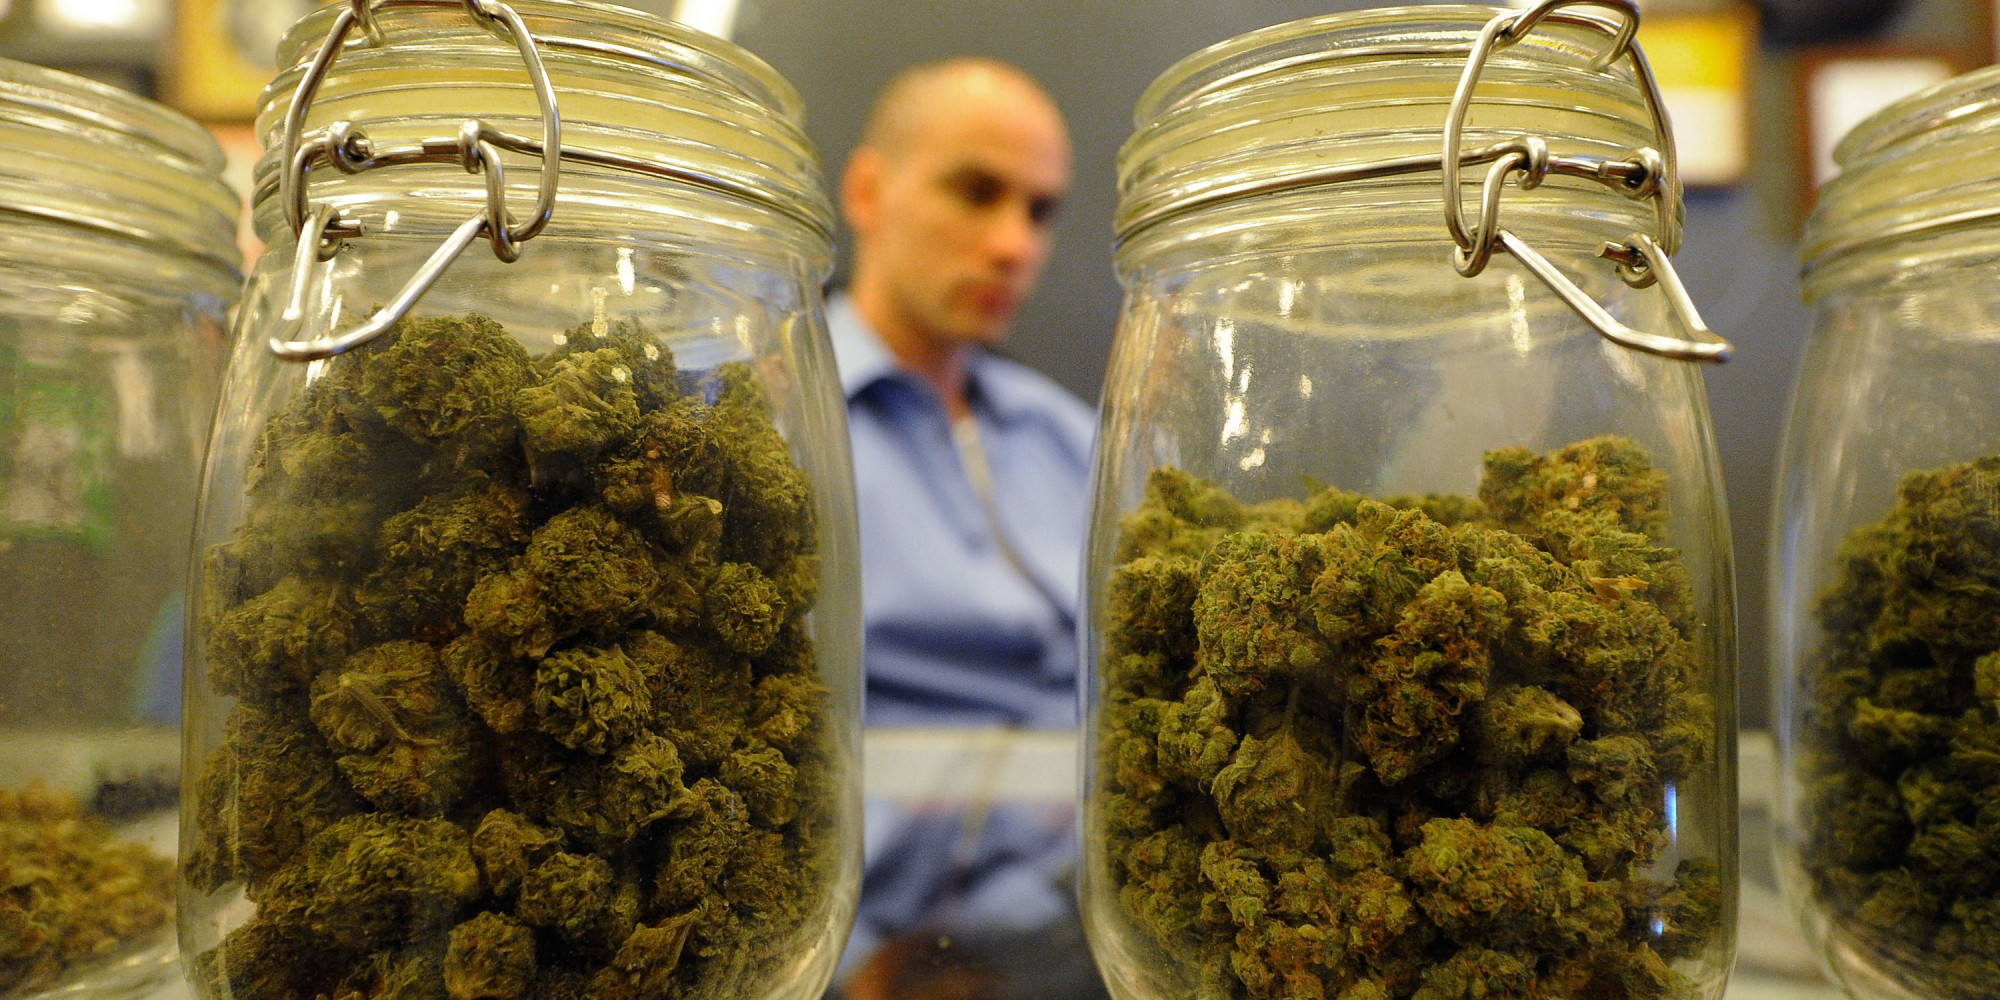 Almost Anyone Can Have A Marijuana Business In Colorado